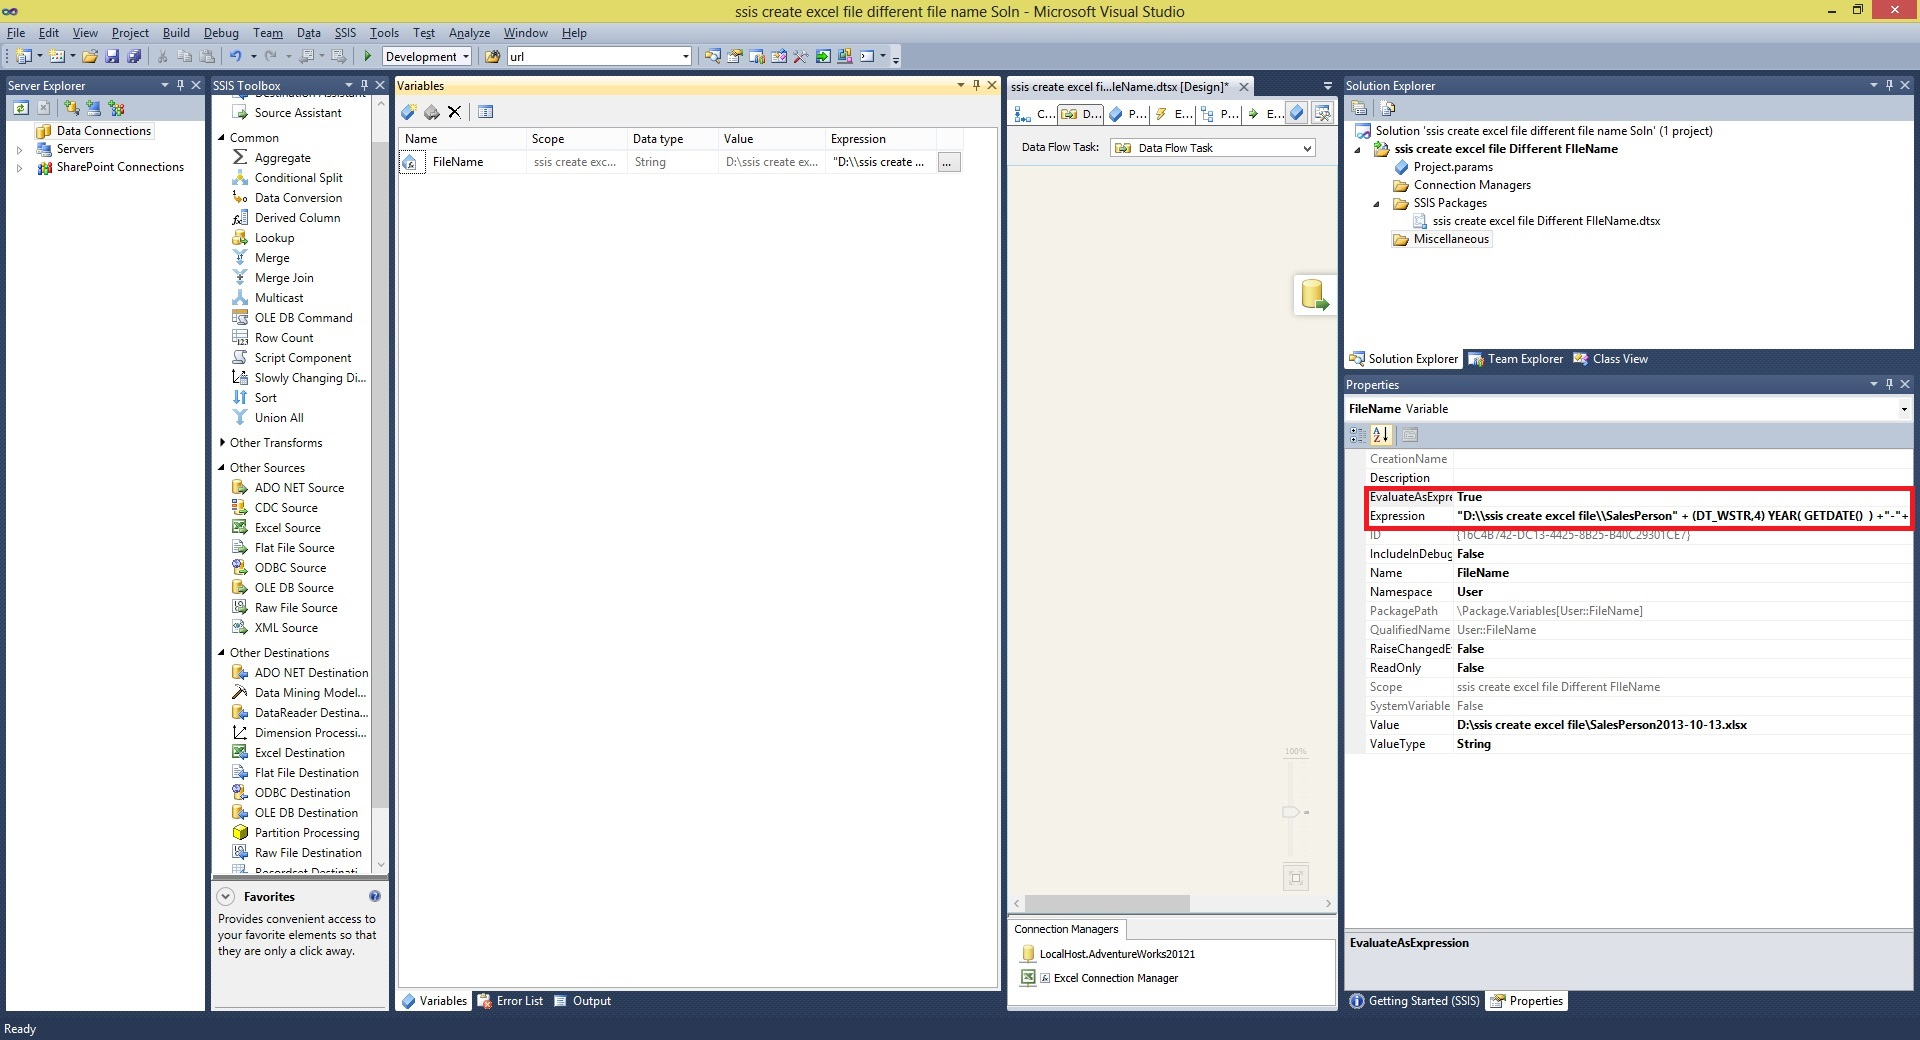 ssis create excel file Different FIleName Step2